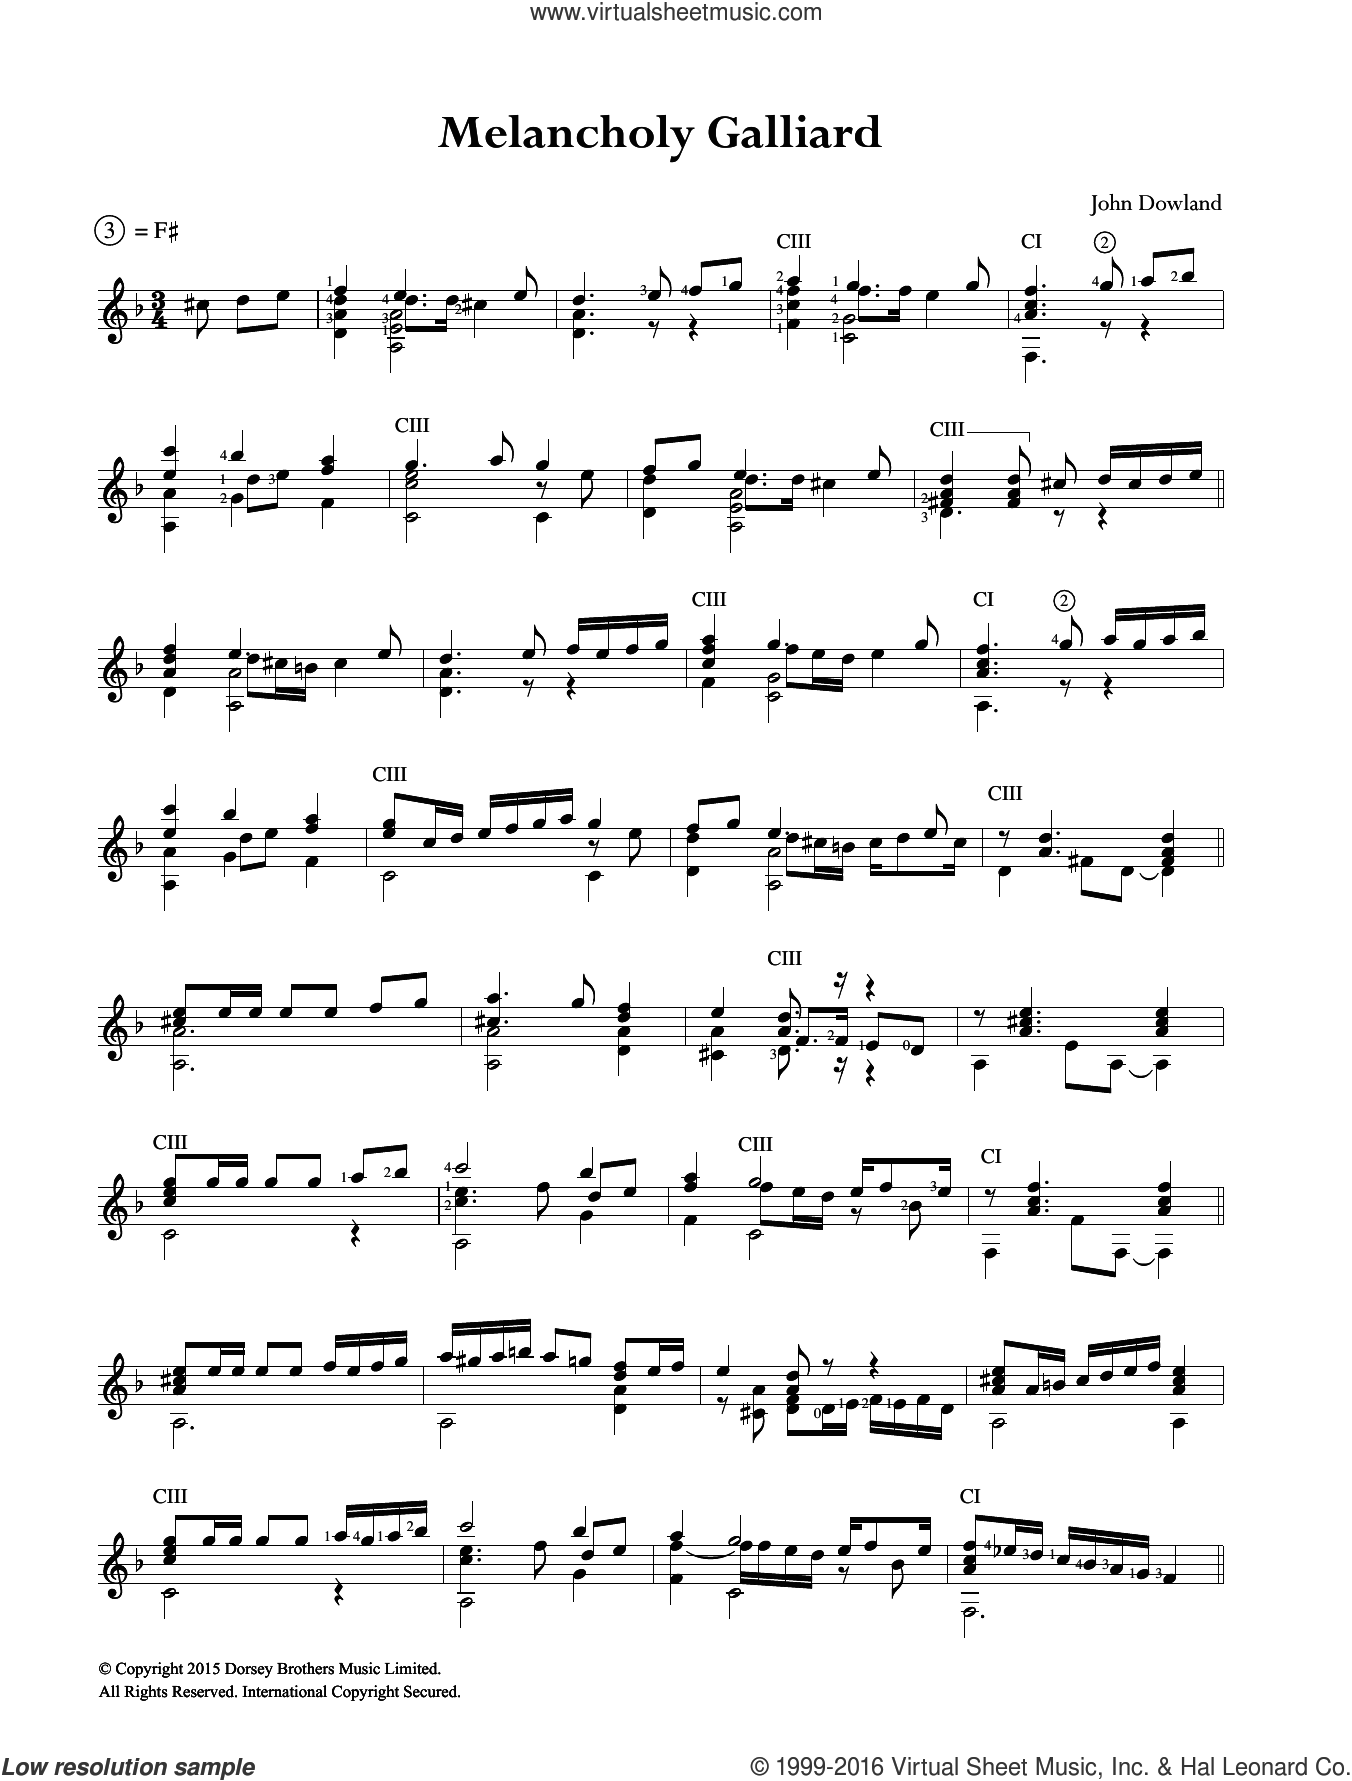 Melancholy Galliard sheet music for guitar solo (chords) by John Dowland